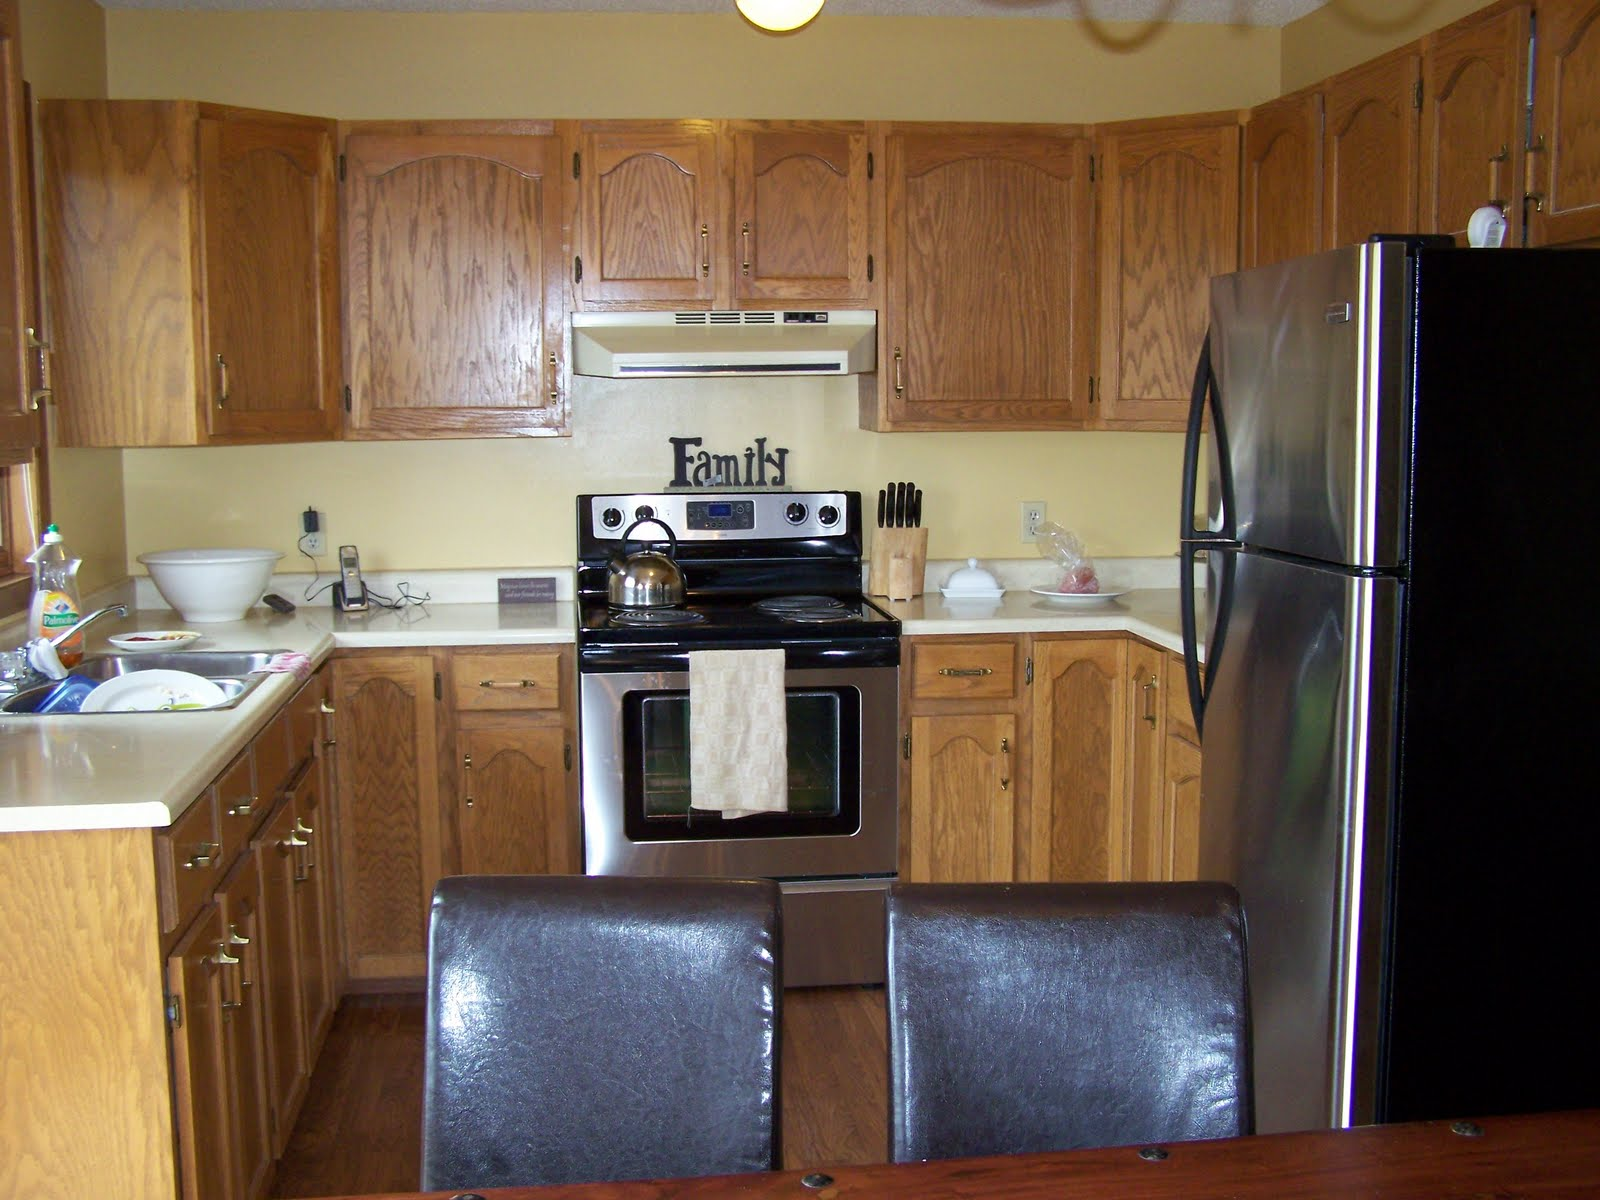 low budget kitchen renovation budget kitchen remodel Low Budget Kitchen Renovation